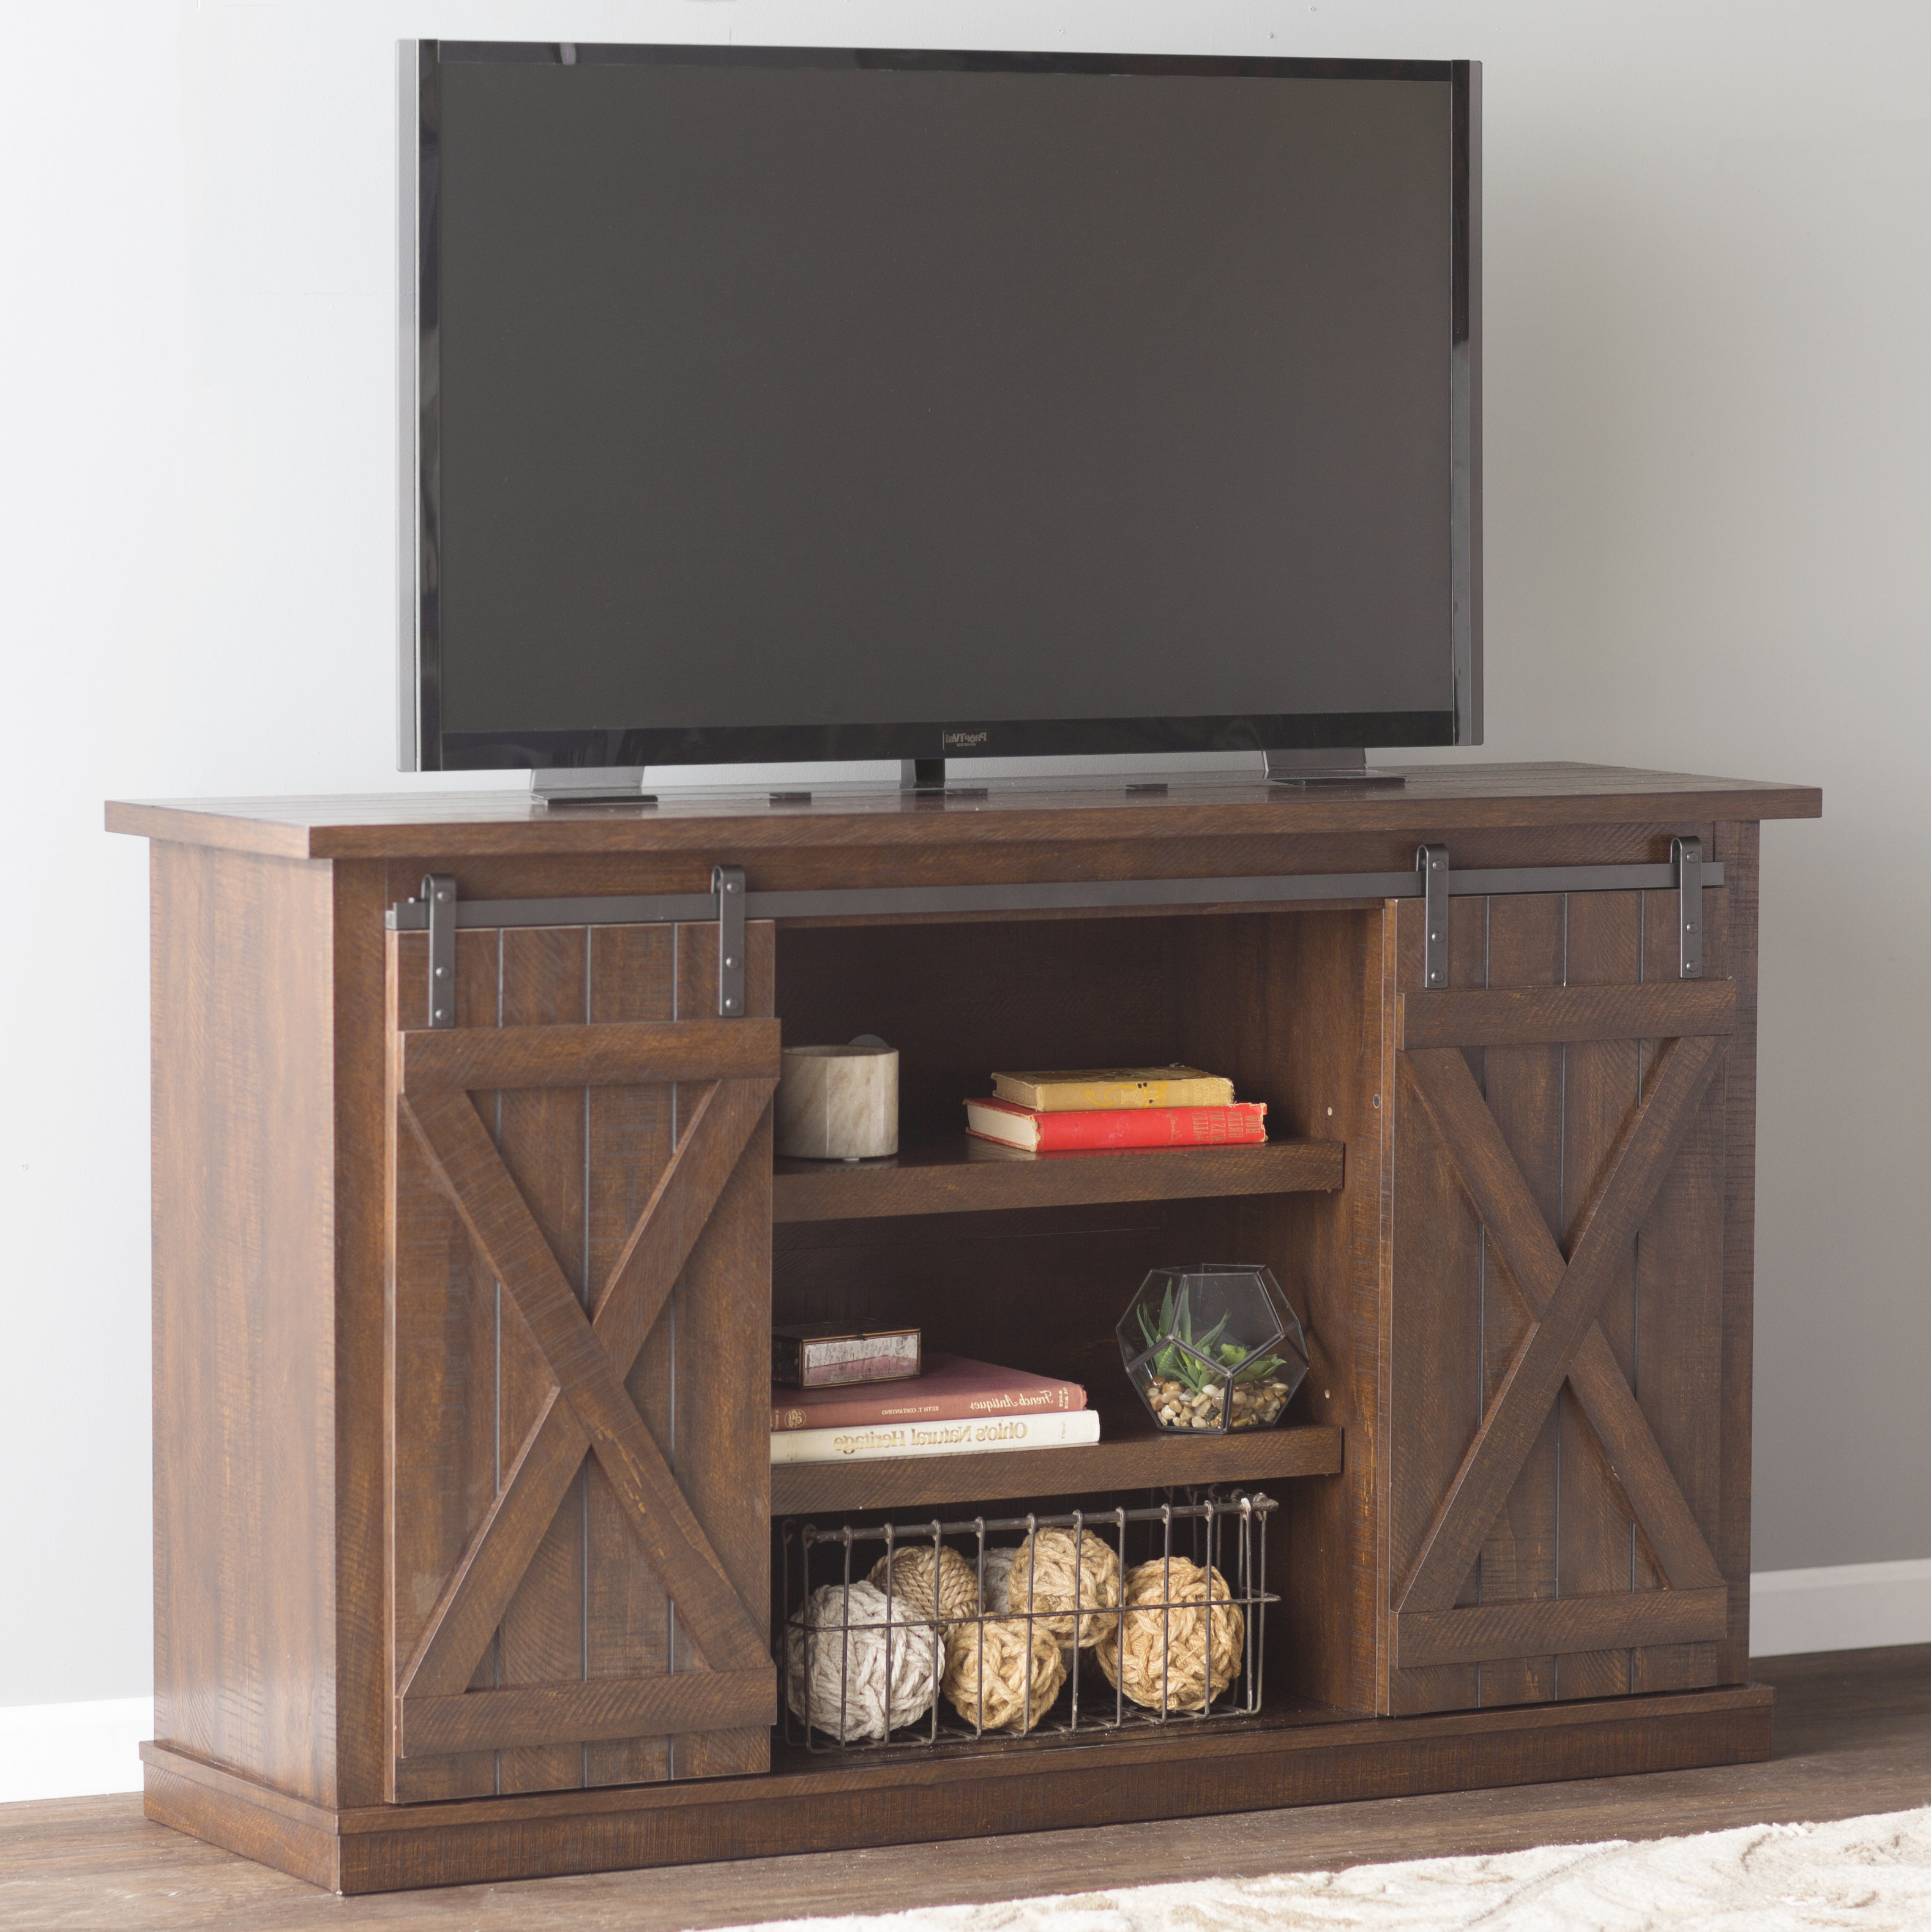 72 Inch Tv Stand | Wayfair With Laurent 70 Inch Tv Stands (View 3 of 20)